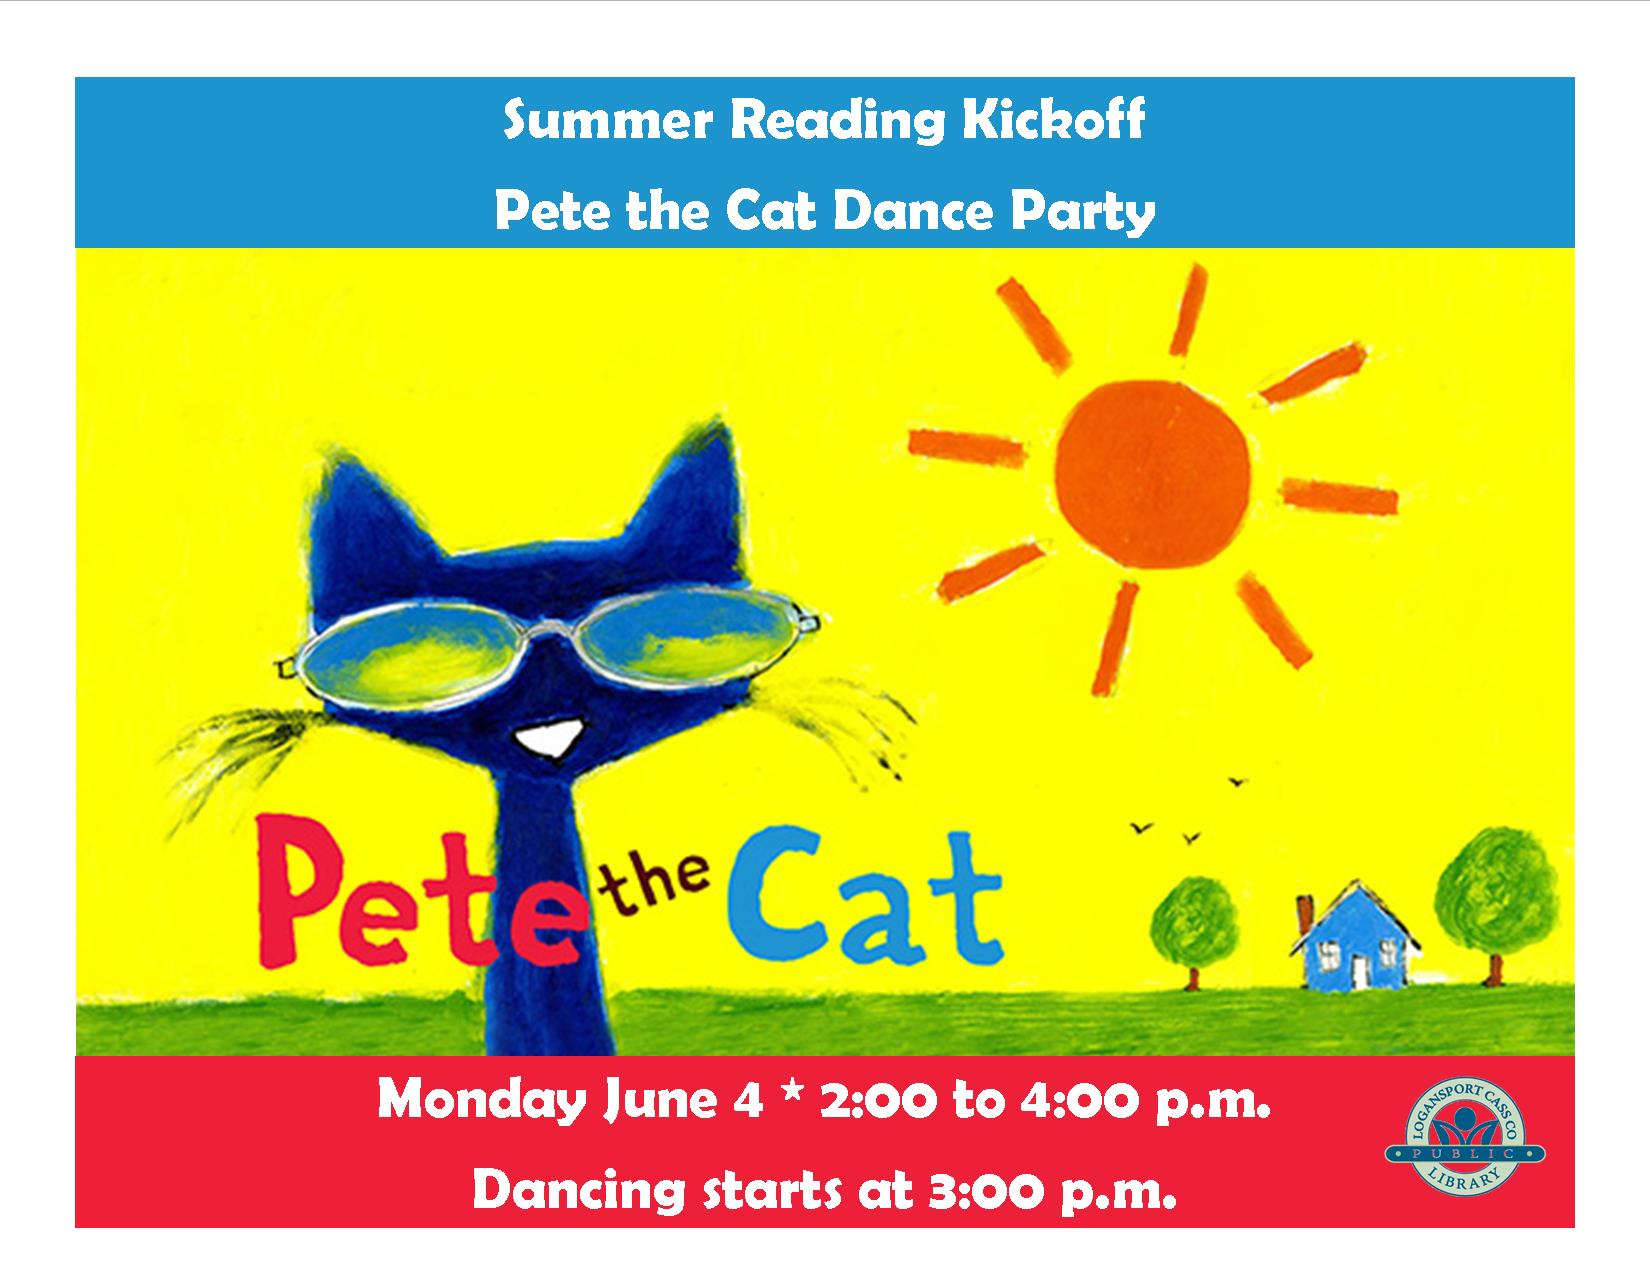 Pete the Cat Dance Party @ Logansport-Cass County Public Library